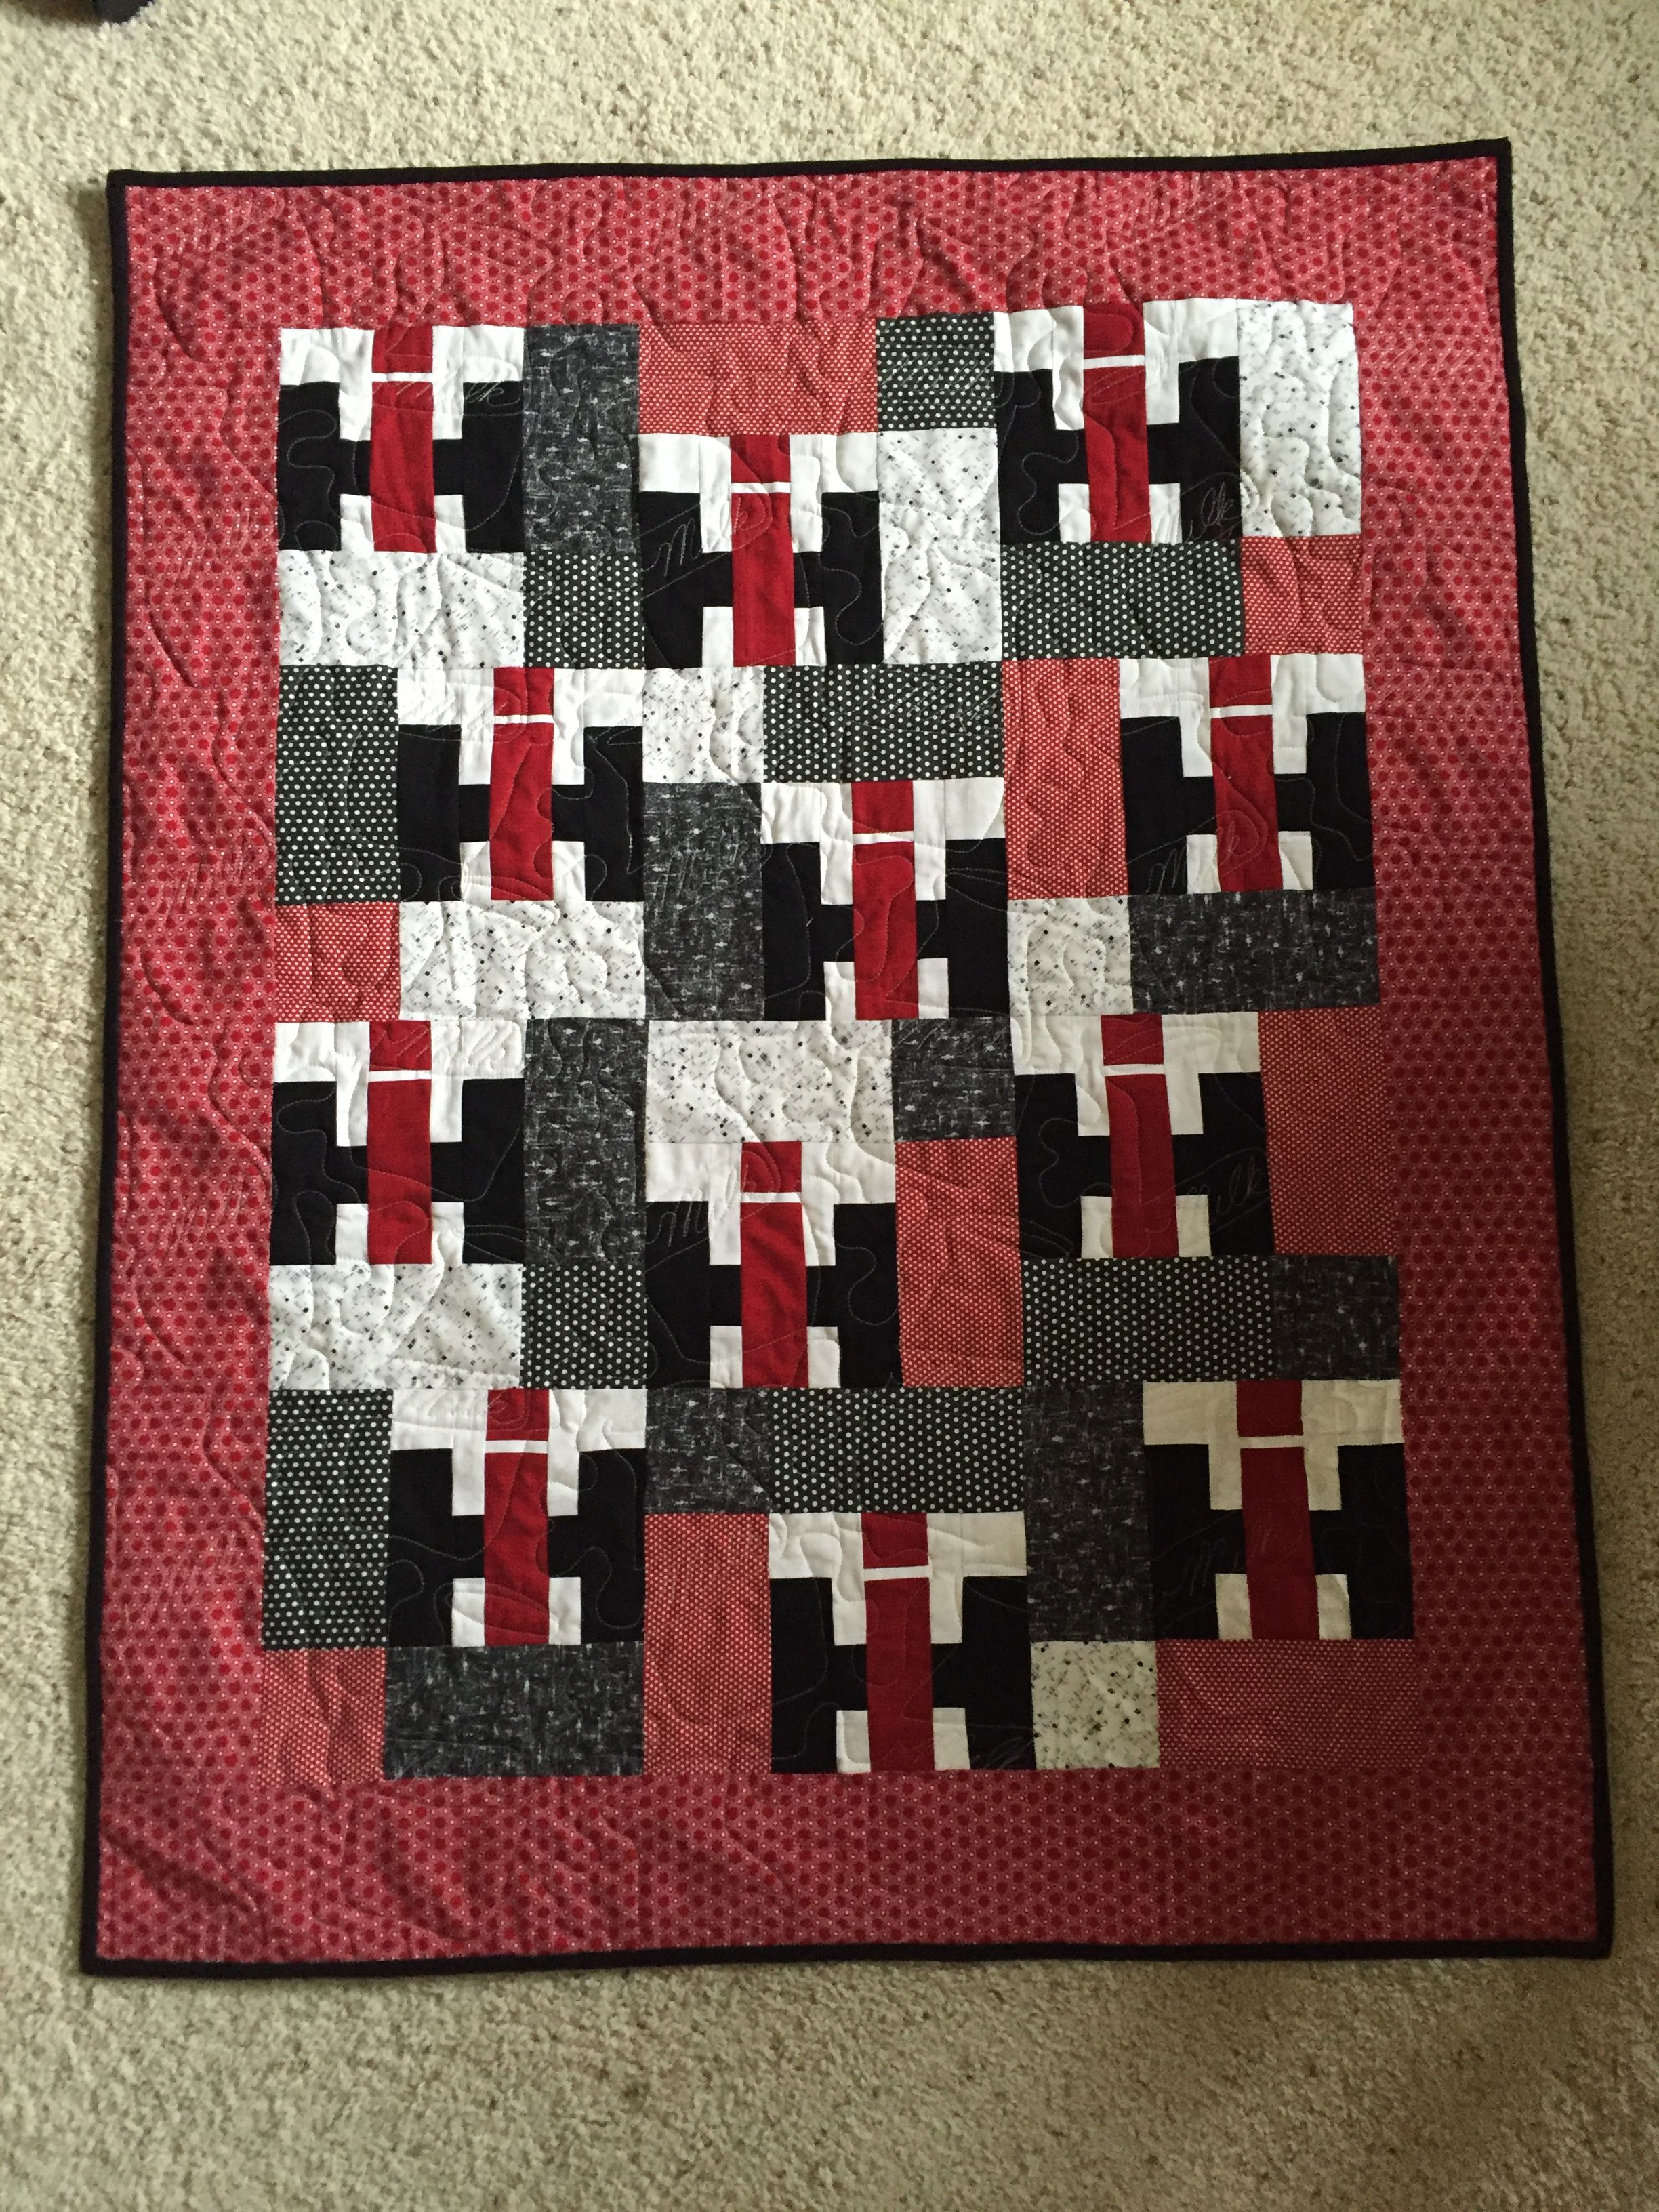 Case Ih Baby Quilt Tractor Quilt Quilts Quilt Patterns